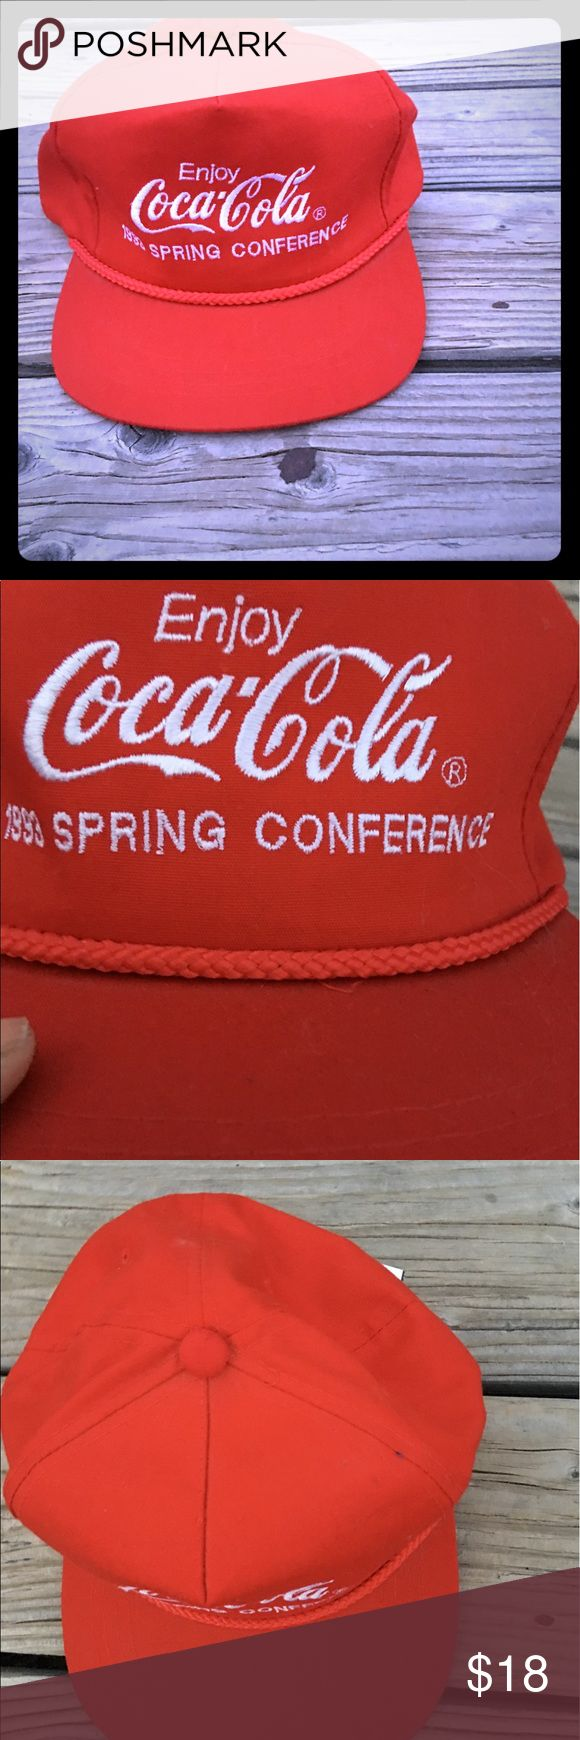 Vintage Coca Cola red SnapBack 1993 conference hat 1993 spring conference Coca Cola hat. This hat is vintage but deadstock meaning it's never been worn. The color is a deeper red then shown in pic. SnapBack. Unisex coca cola Accessories Hats